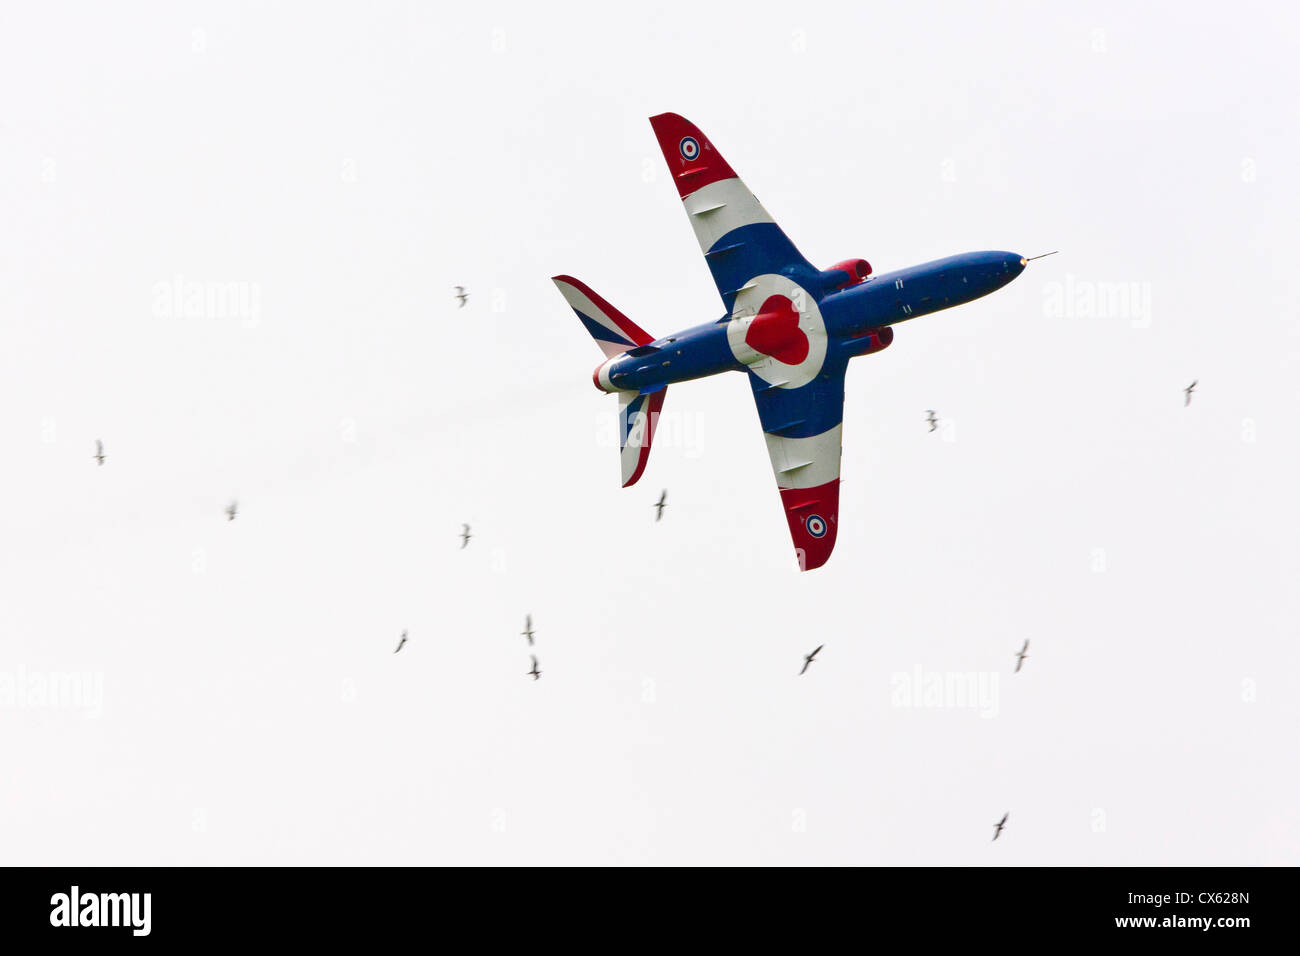 Red Arrows Hawk aircraft in RAF Benevolent Fund colours at Best of British Show, Cotswold (Kemble EGBP) Airport. - Stock Image